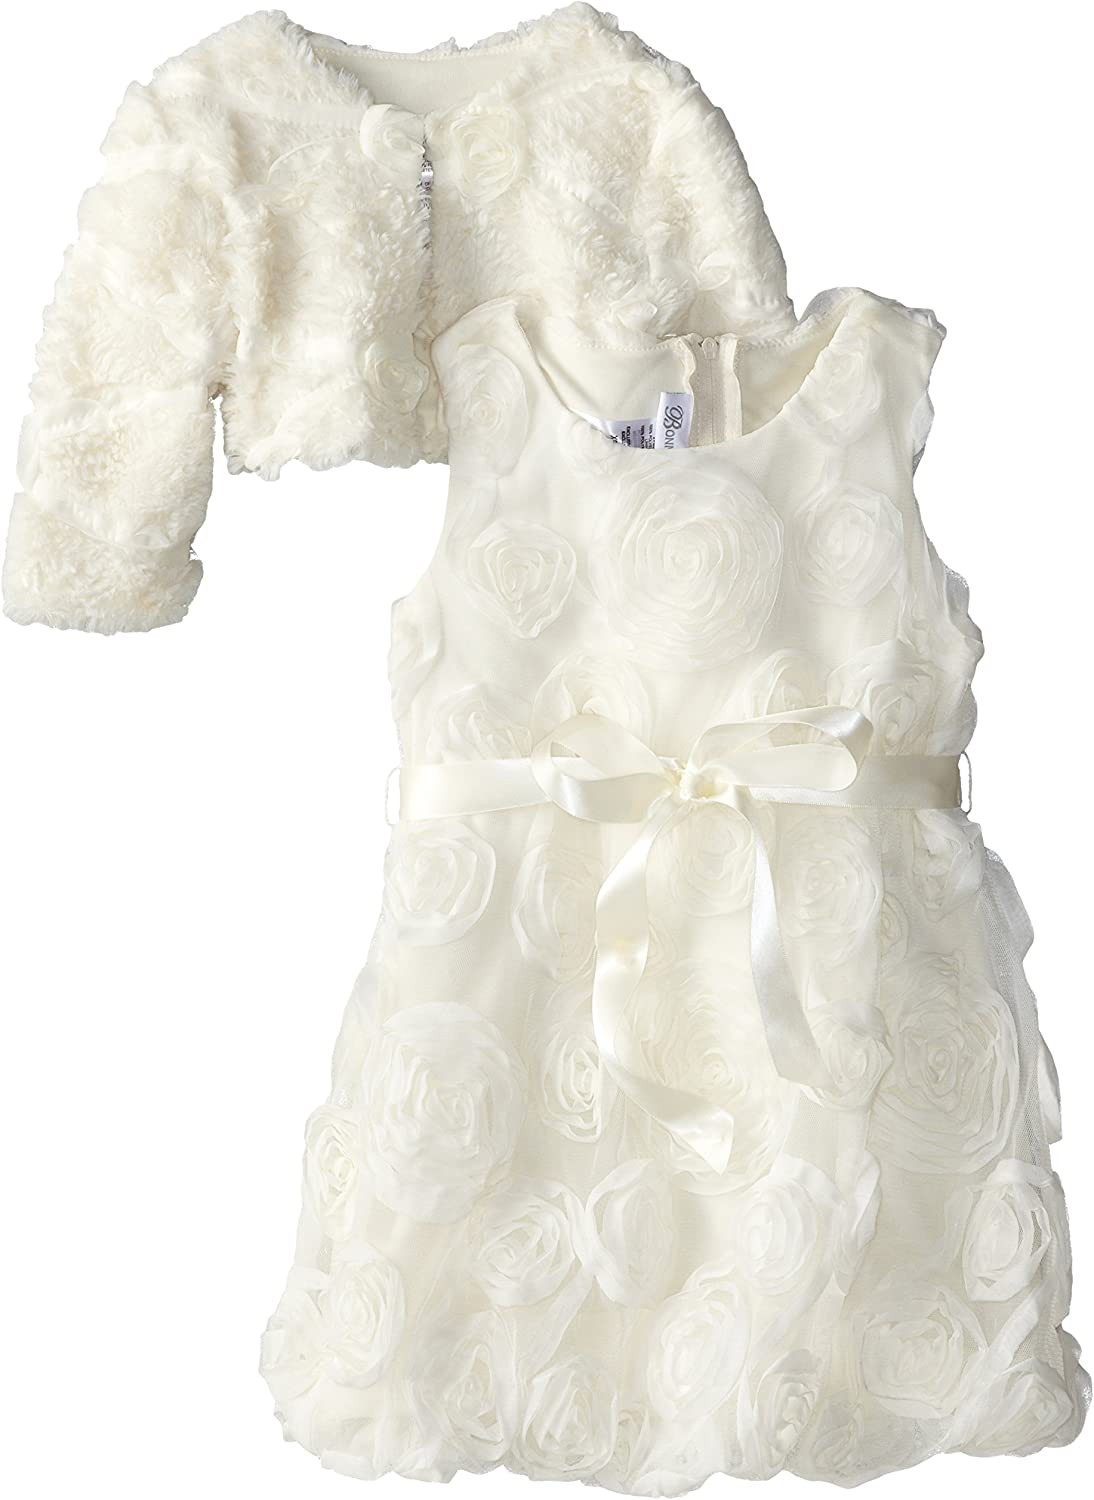 Bonnie Jean Little Girls' Bonaz Dress High quality new Bubble with Free shipping Jacket